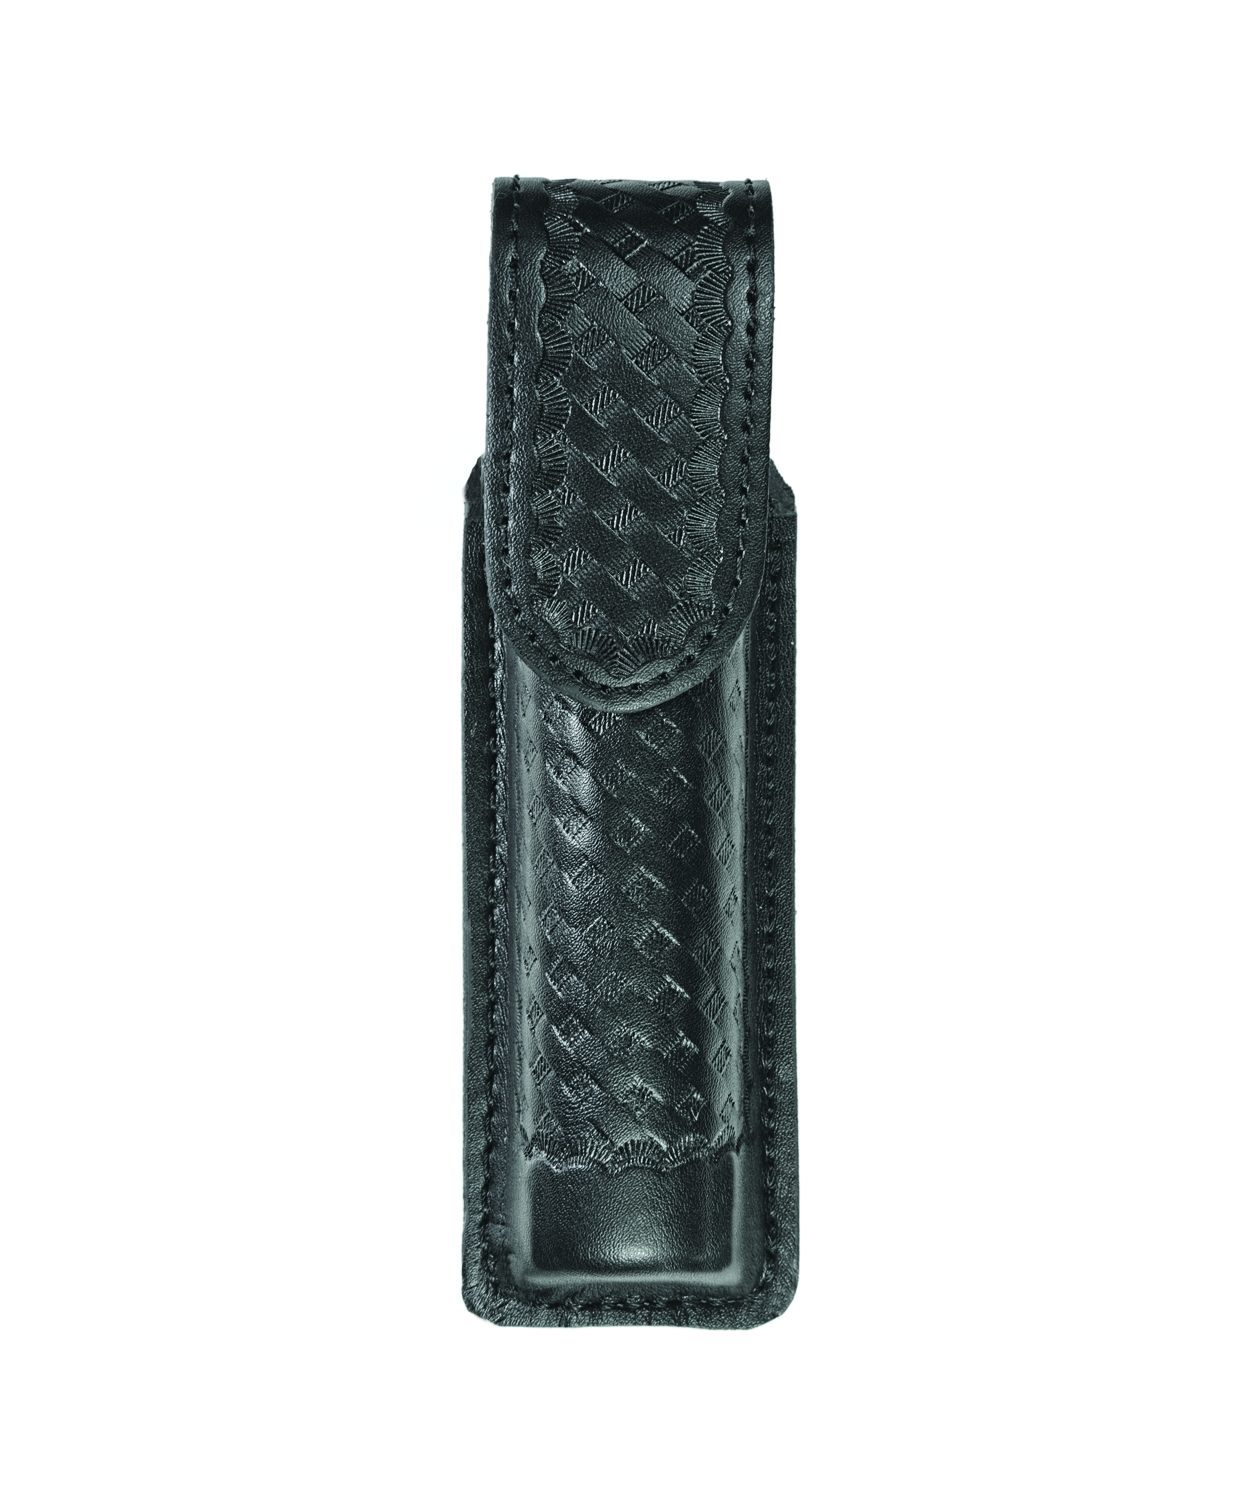 Flashlight Case, Medium, AirTek, BW, Hidden Snap-